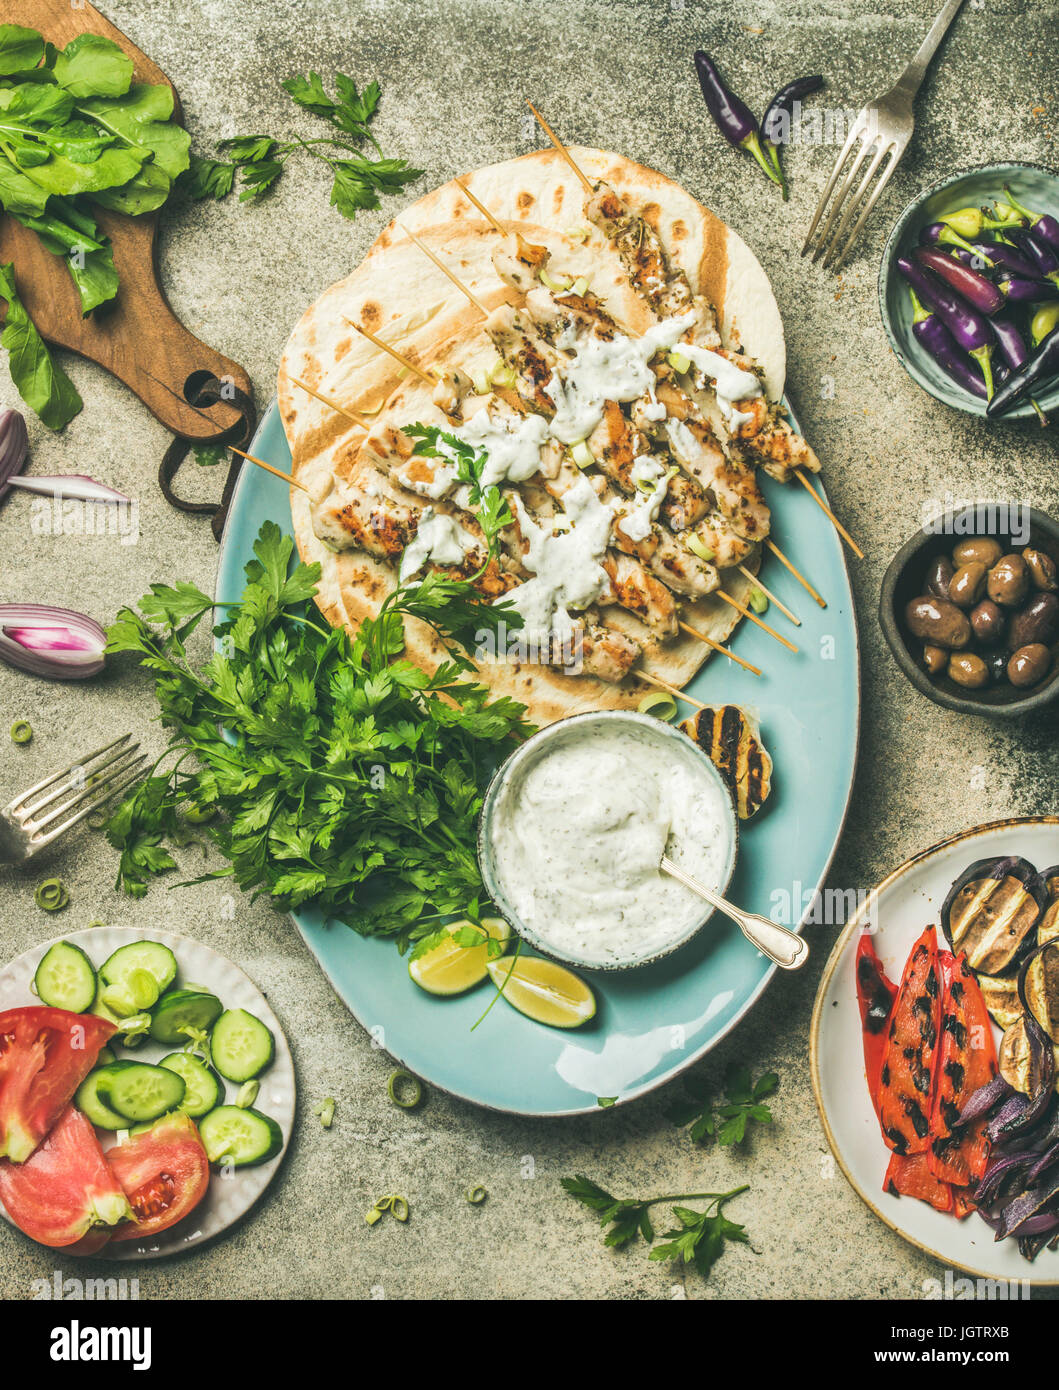 Summer barbecue party dinner set. Flatlay of grilled chicken skewers with yogurt dip, flatbreads, fresh parsley, - Stock Image